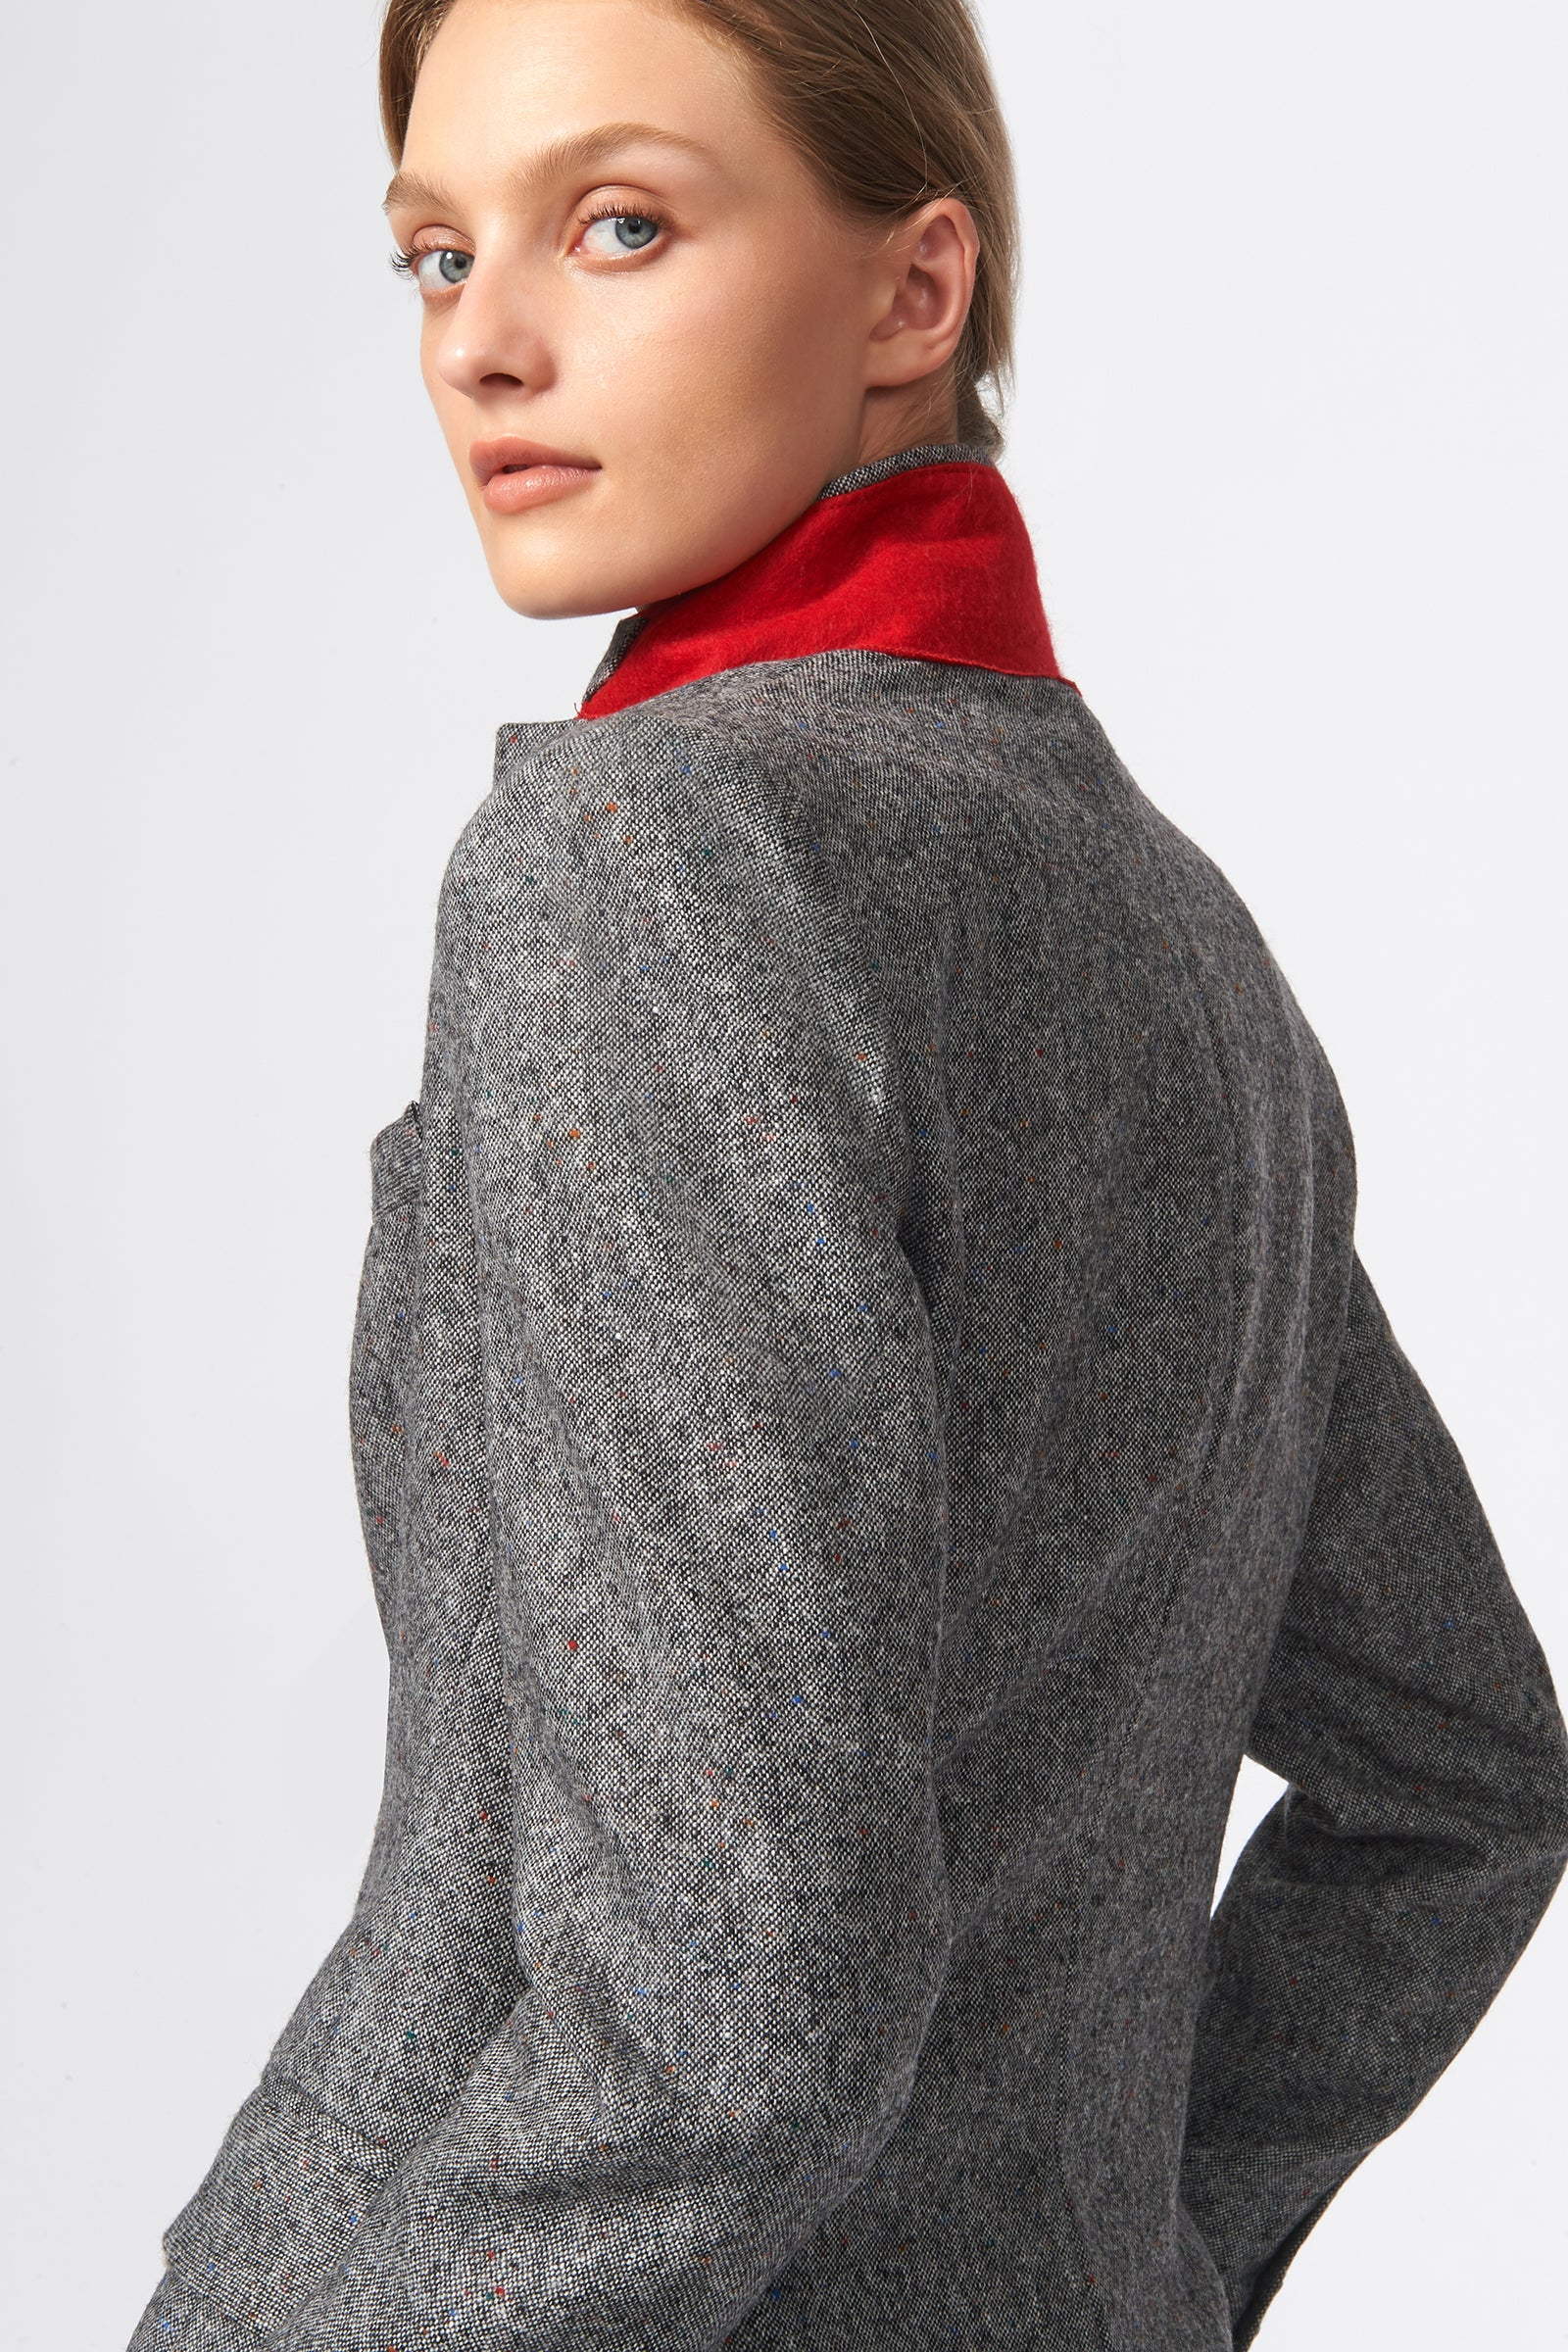 Kal Rieman Classic Notch Blazer in Grey Tweed on Model Back Detail  View